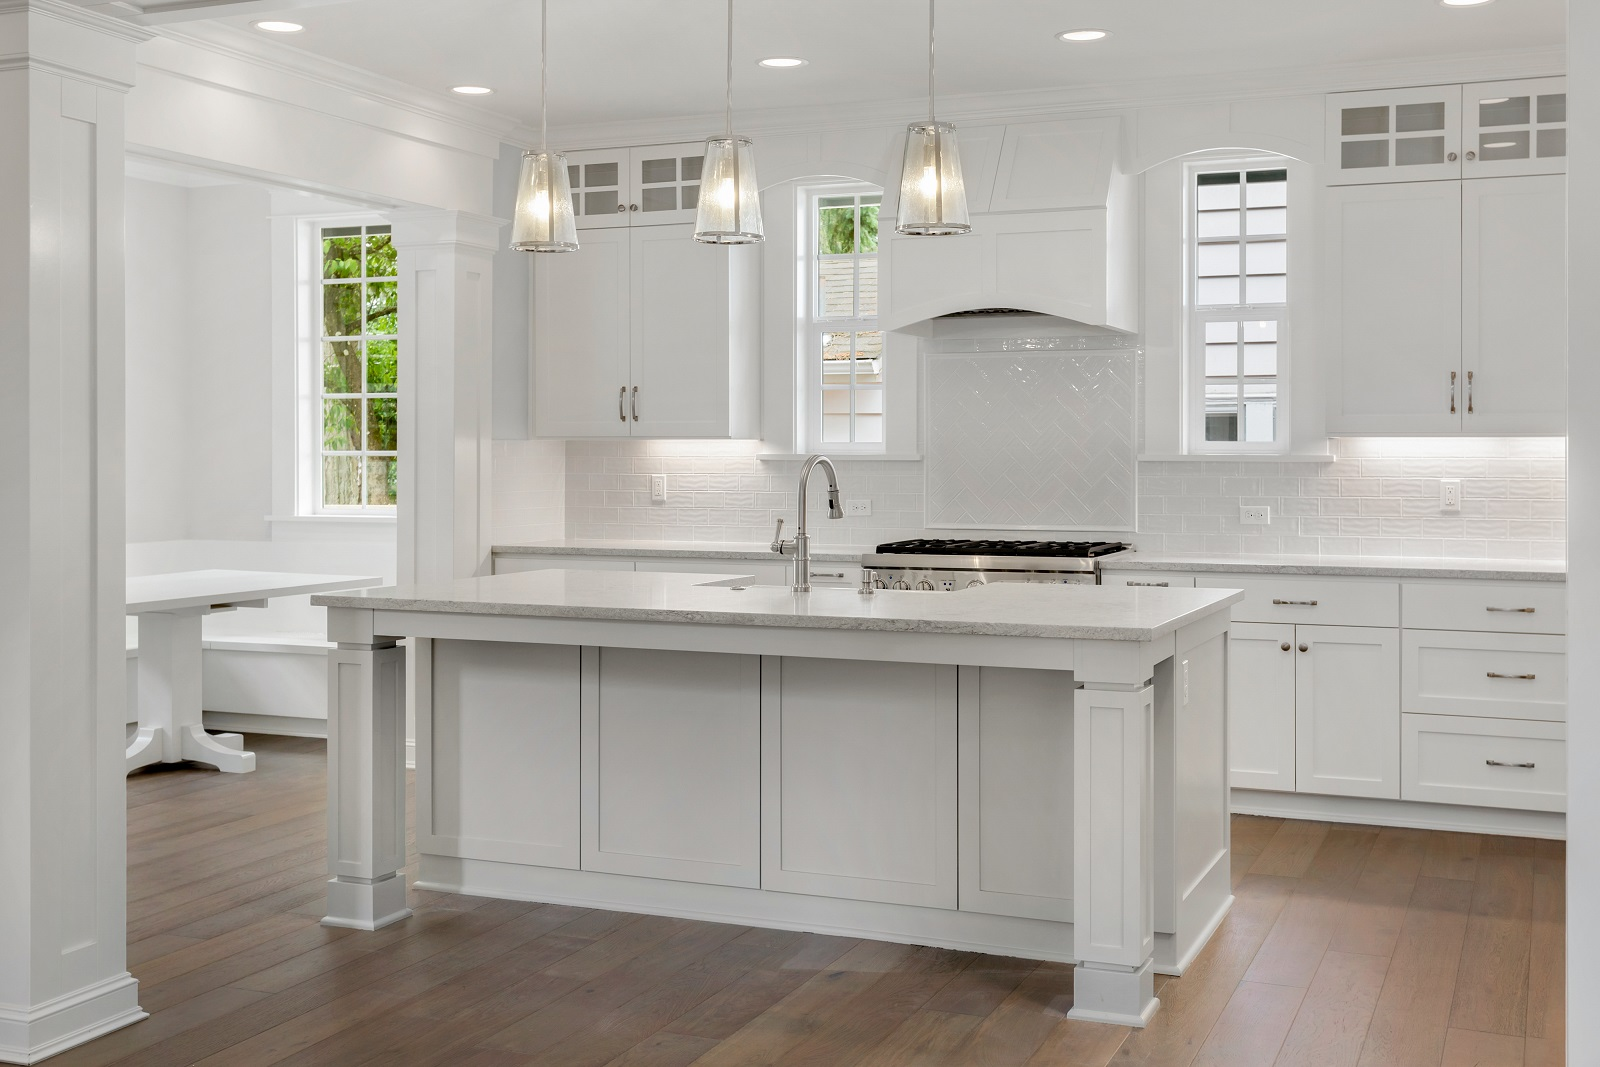 shaker kitchen with flat pack cabinets